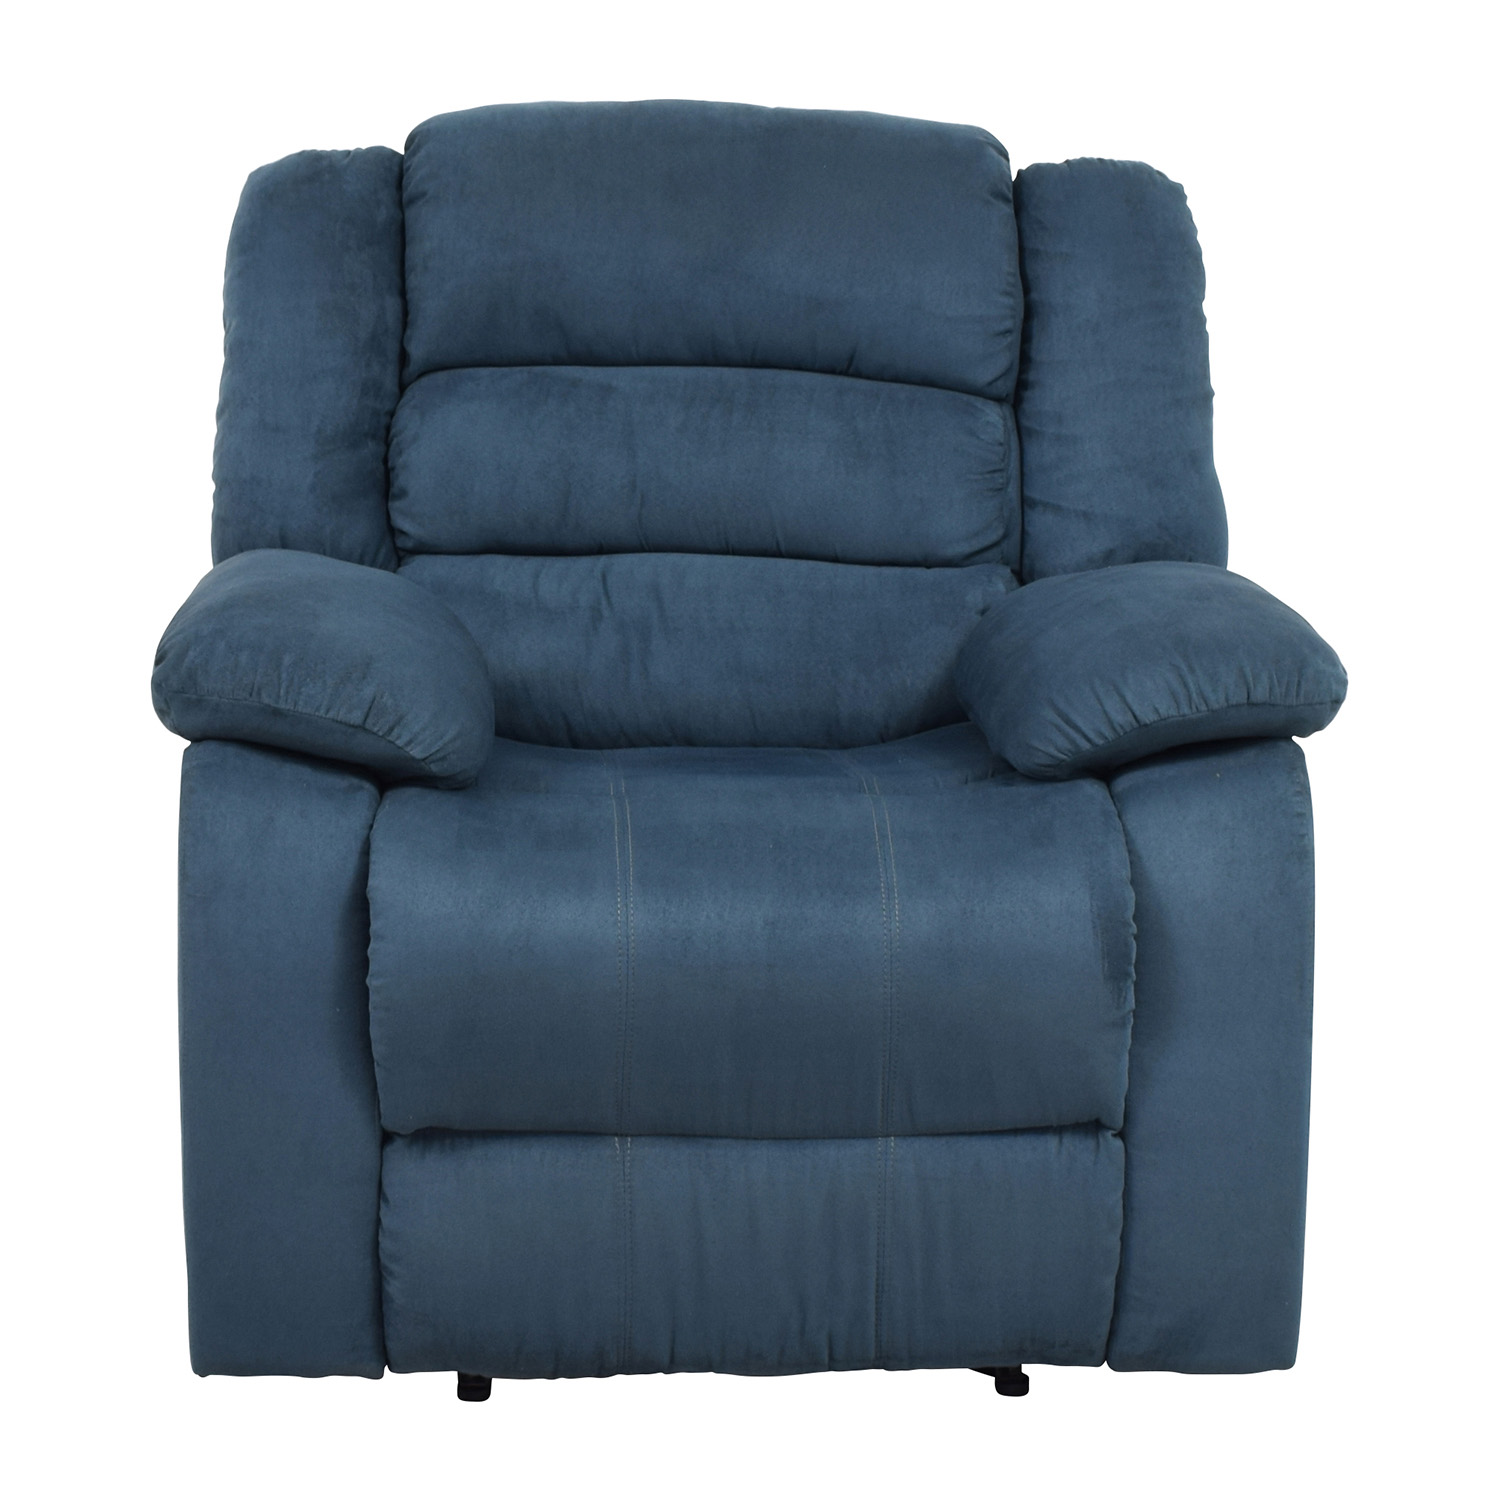 Nathaniel Home Express Addison Contemporary Recliner / Chairs ...